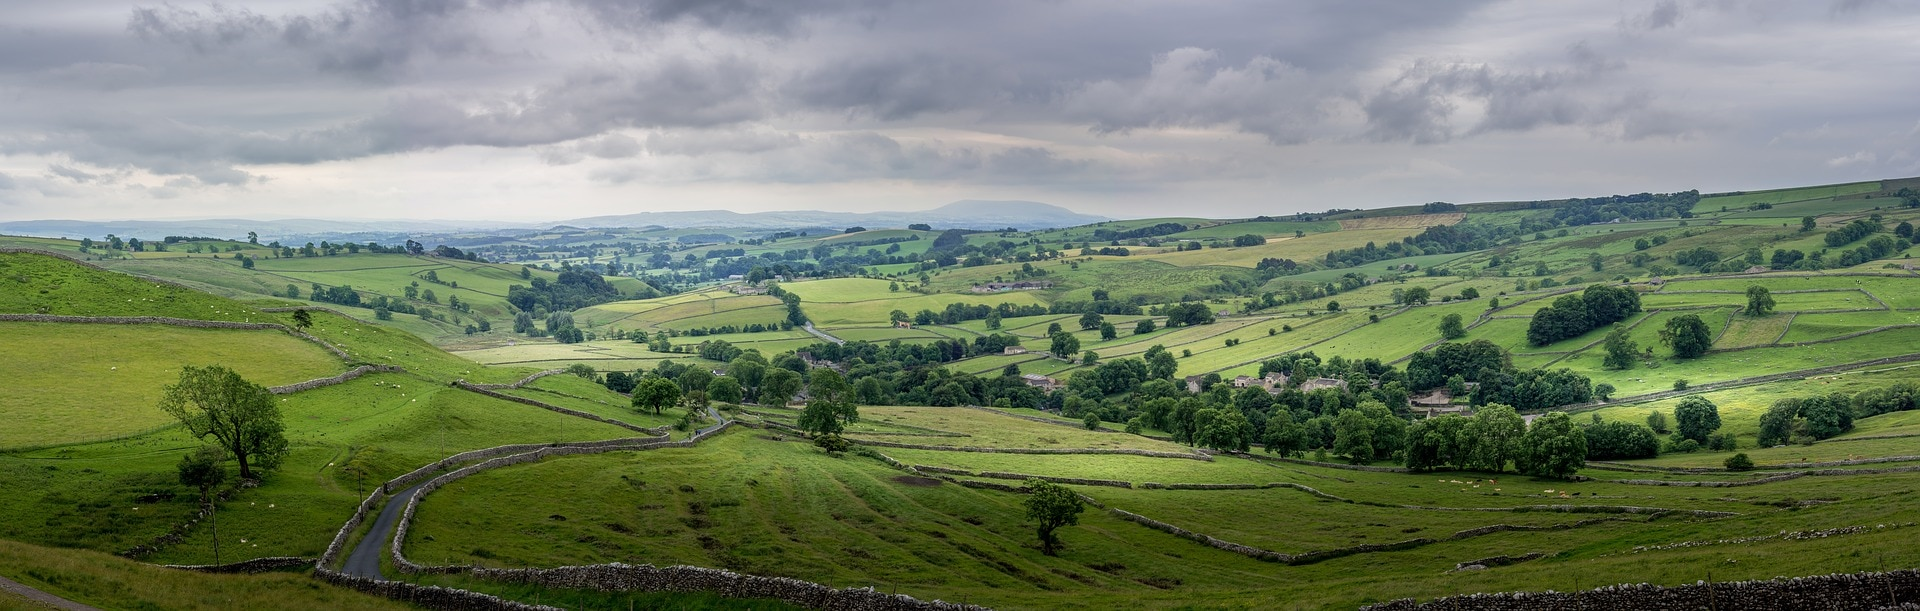 Malham view in Things to do in North Yorkshire